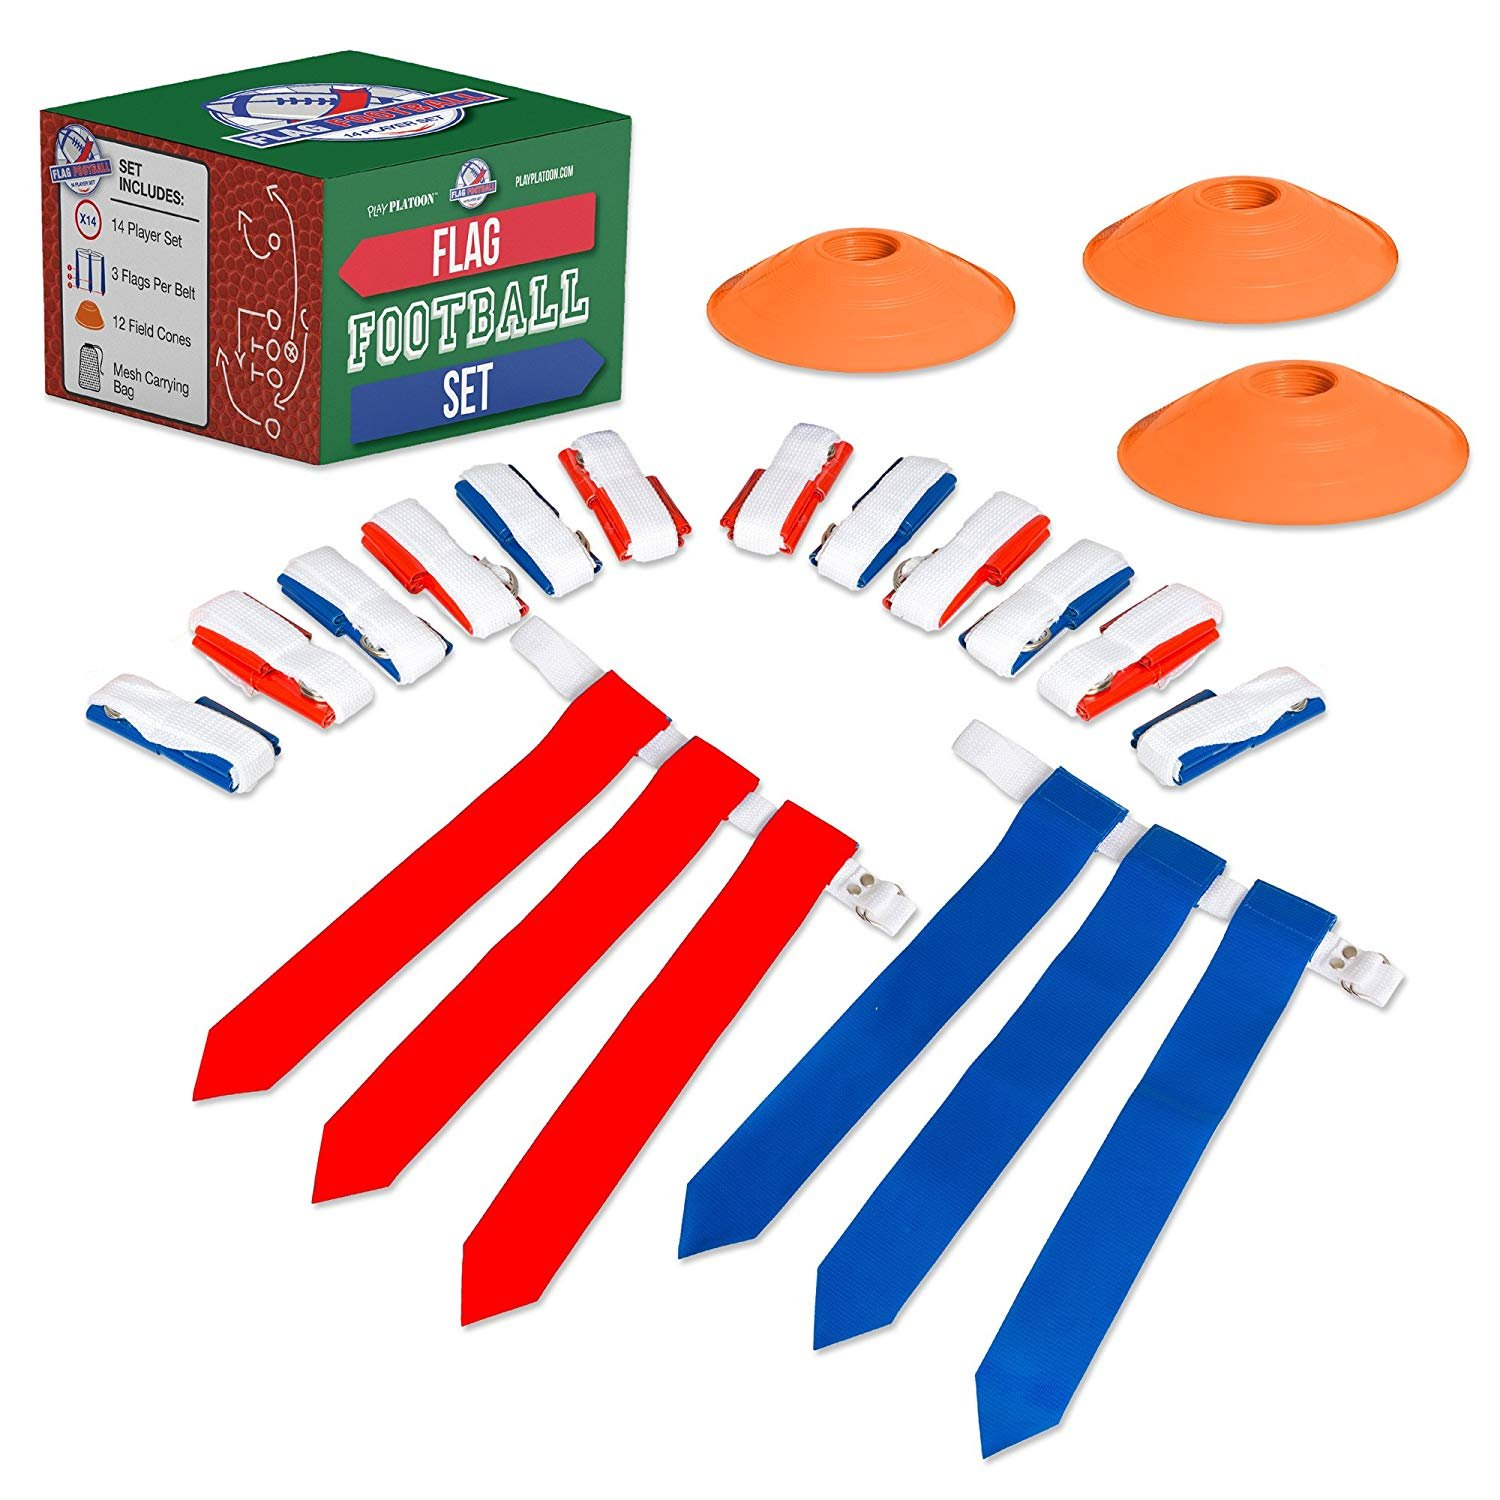 14 Player Flag Football Deluxe Set - 14 Belts, 42 Flags, 12 Cones & 1 Mesh Carrying Bag for Flag Football Play Platoon